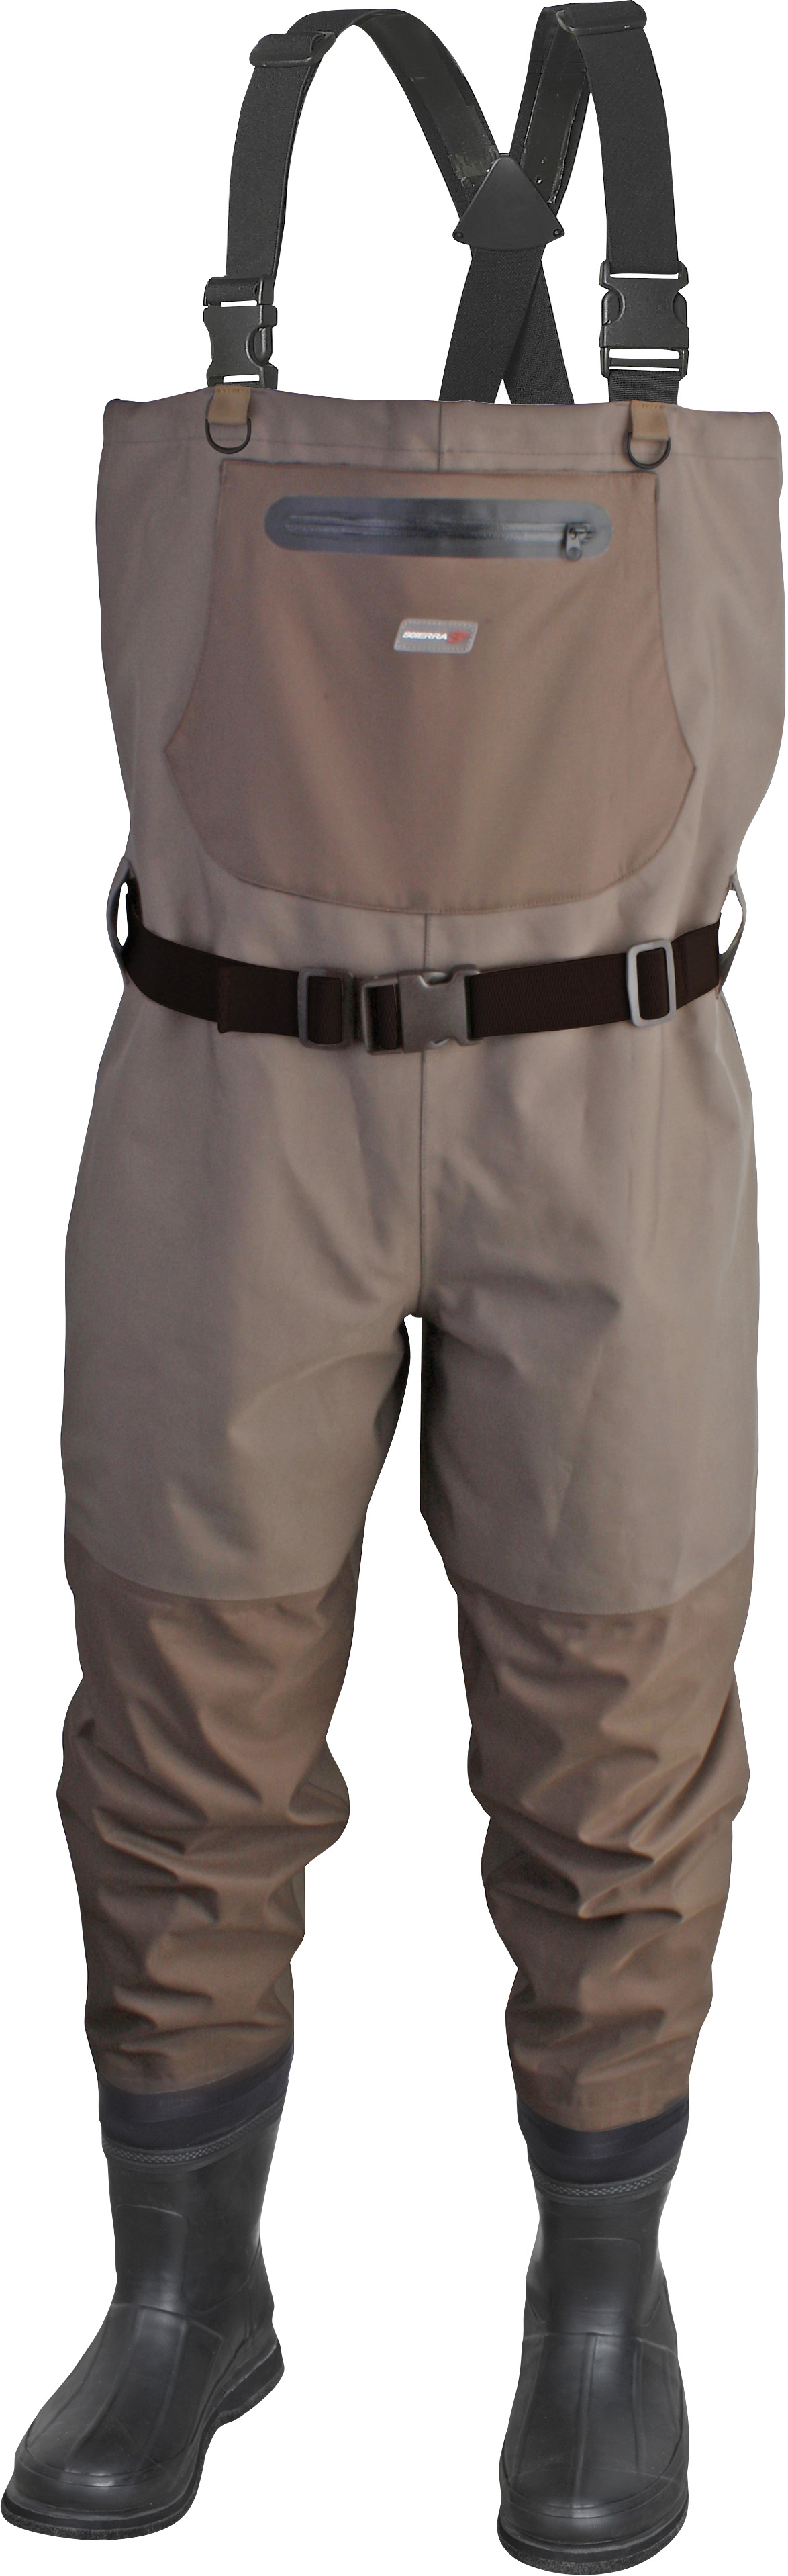 Scierra cc3 xp boot foot chest wader glasgow angling centre for Fishing waders with boots